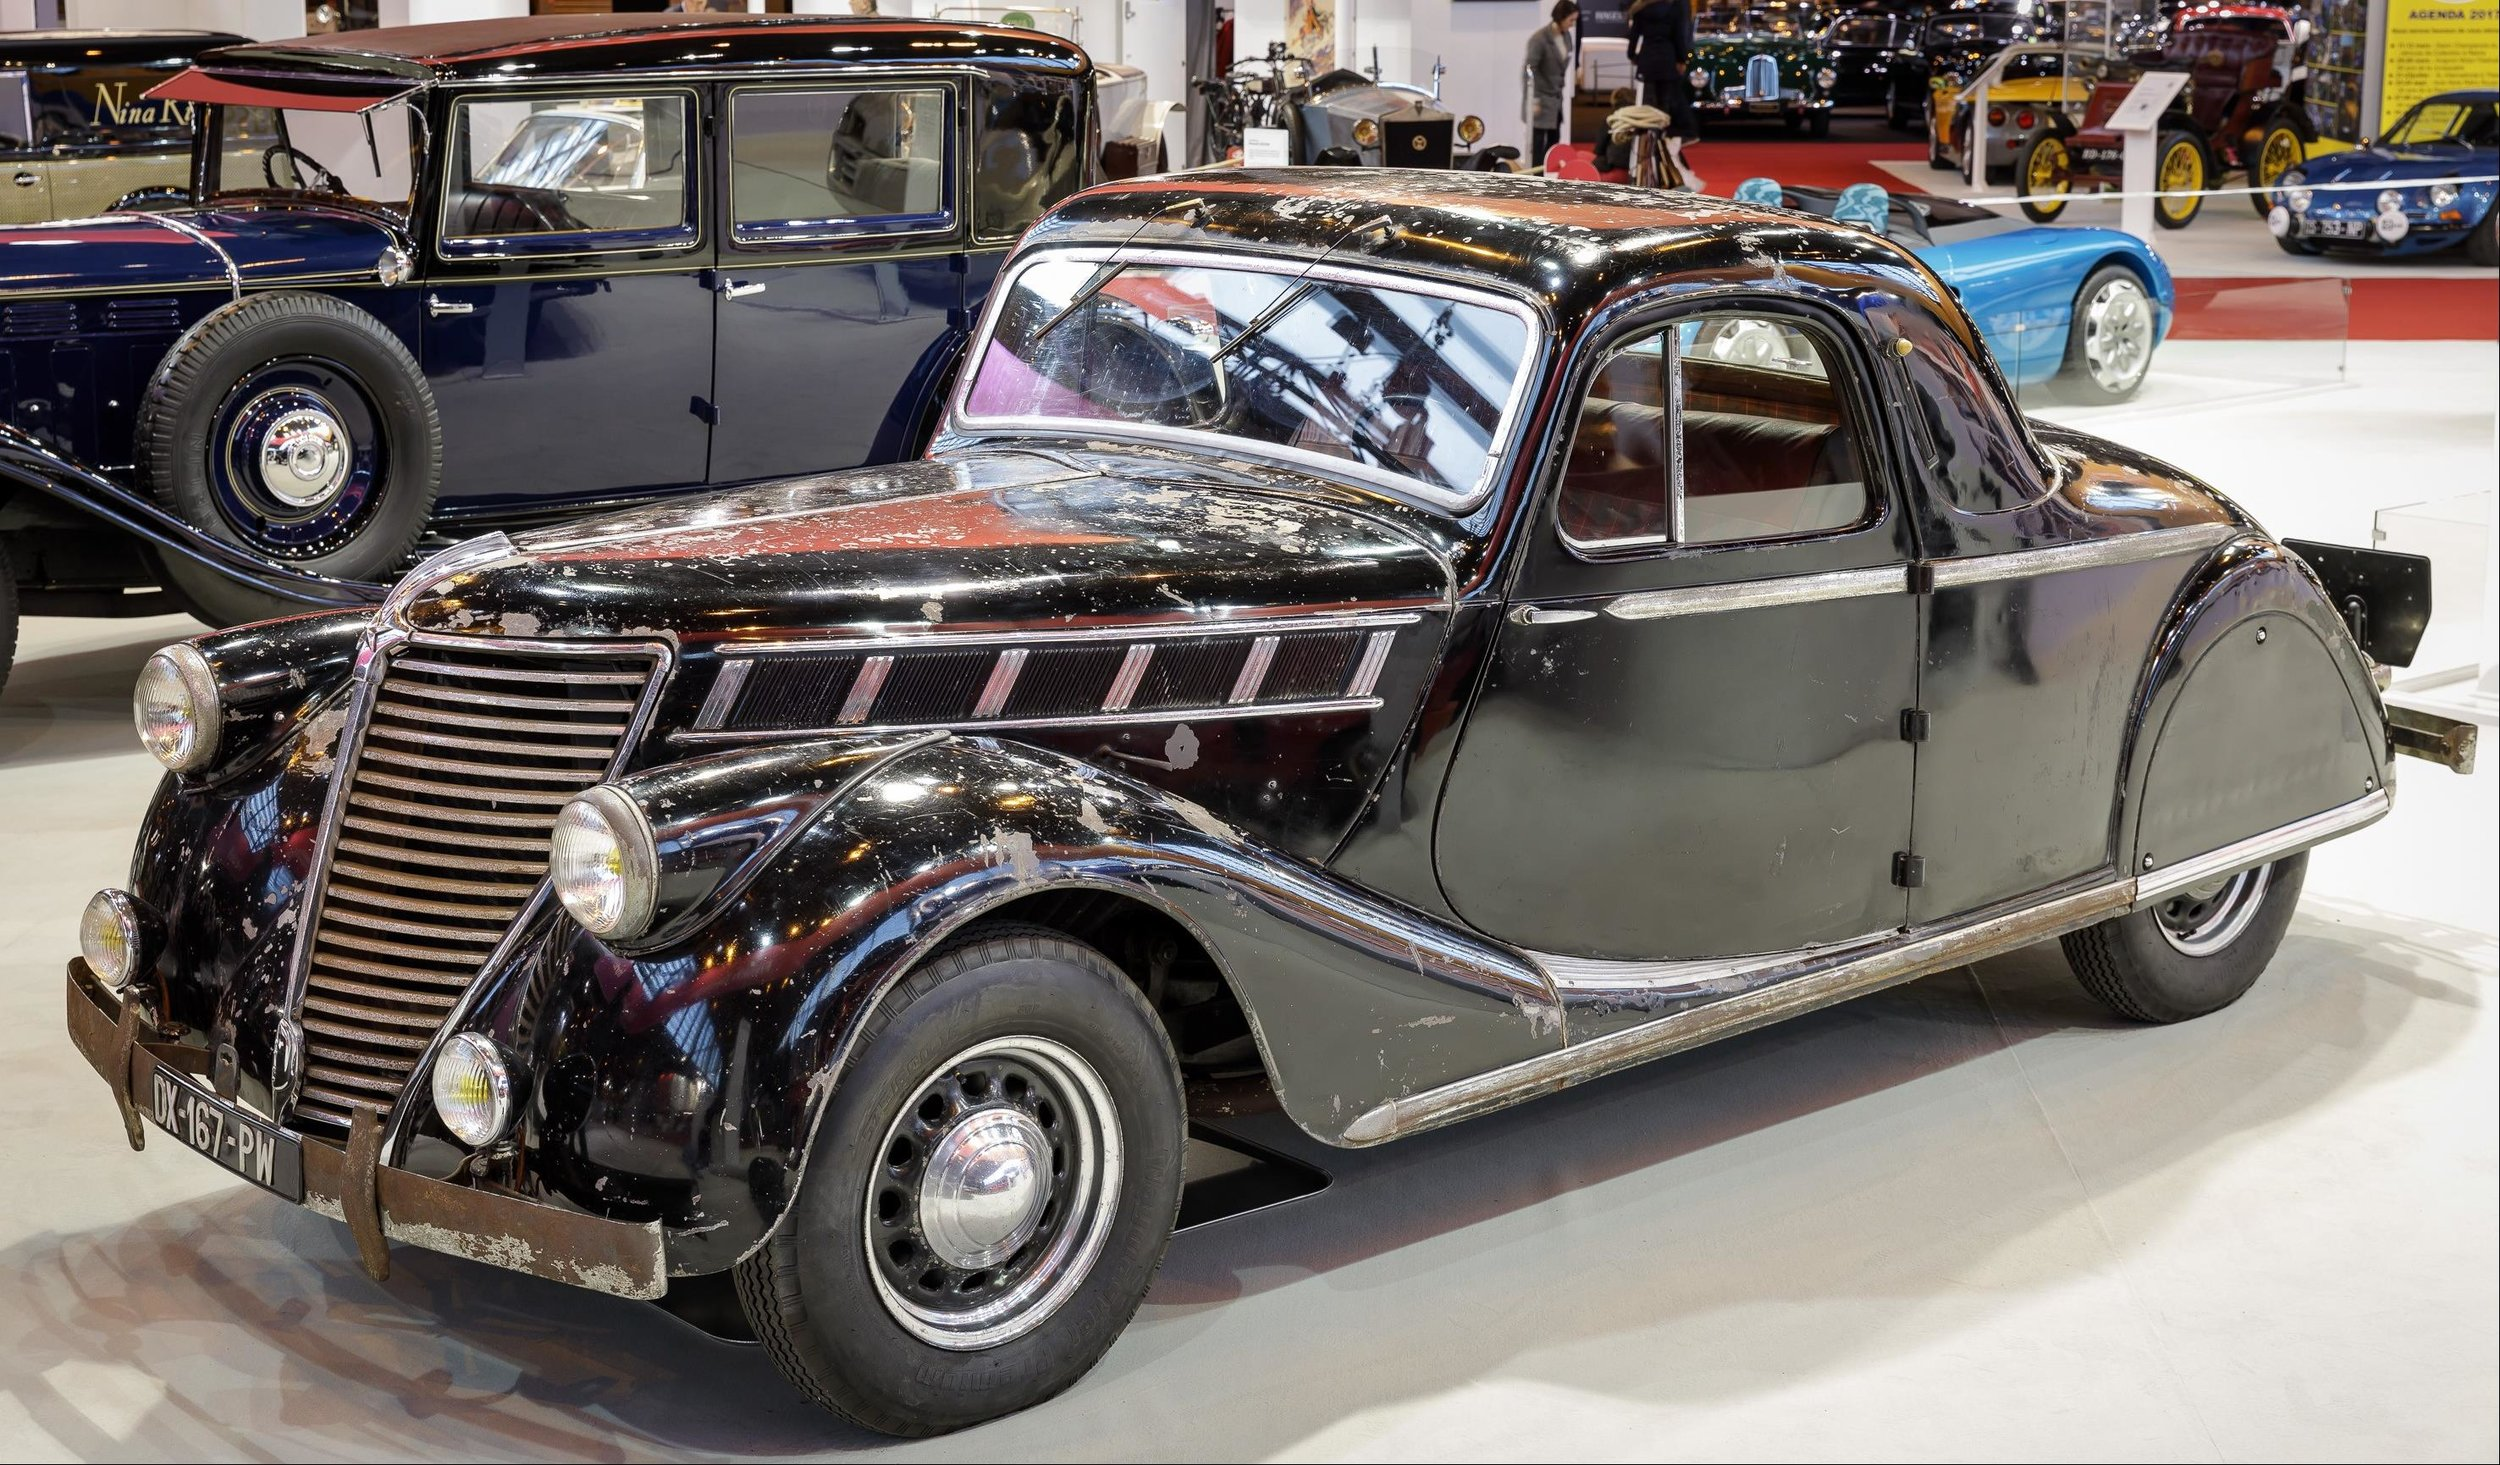 Renault_Viva_Grand_Sport_Coupé_1939_at_Retromobile_2017_(1).jpg